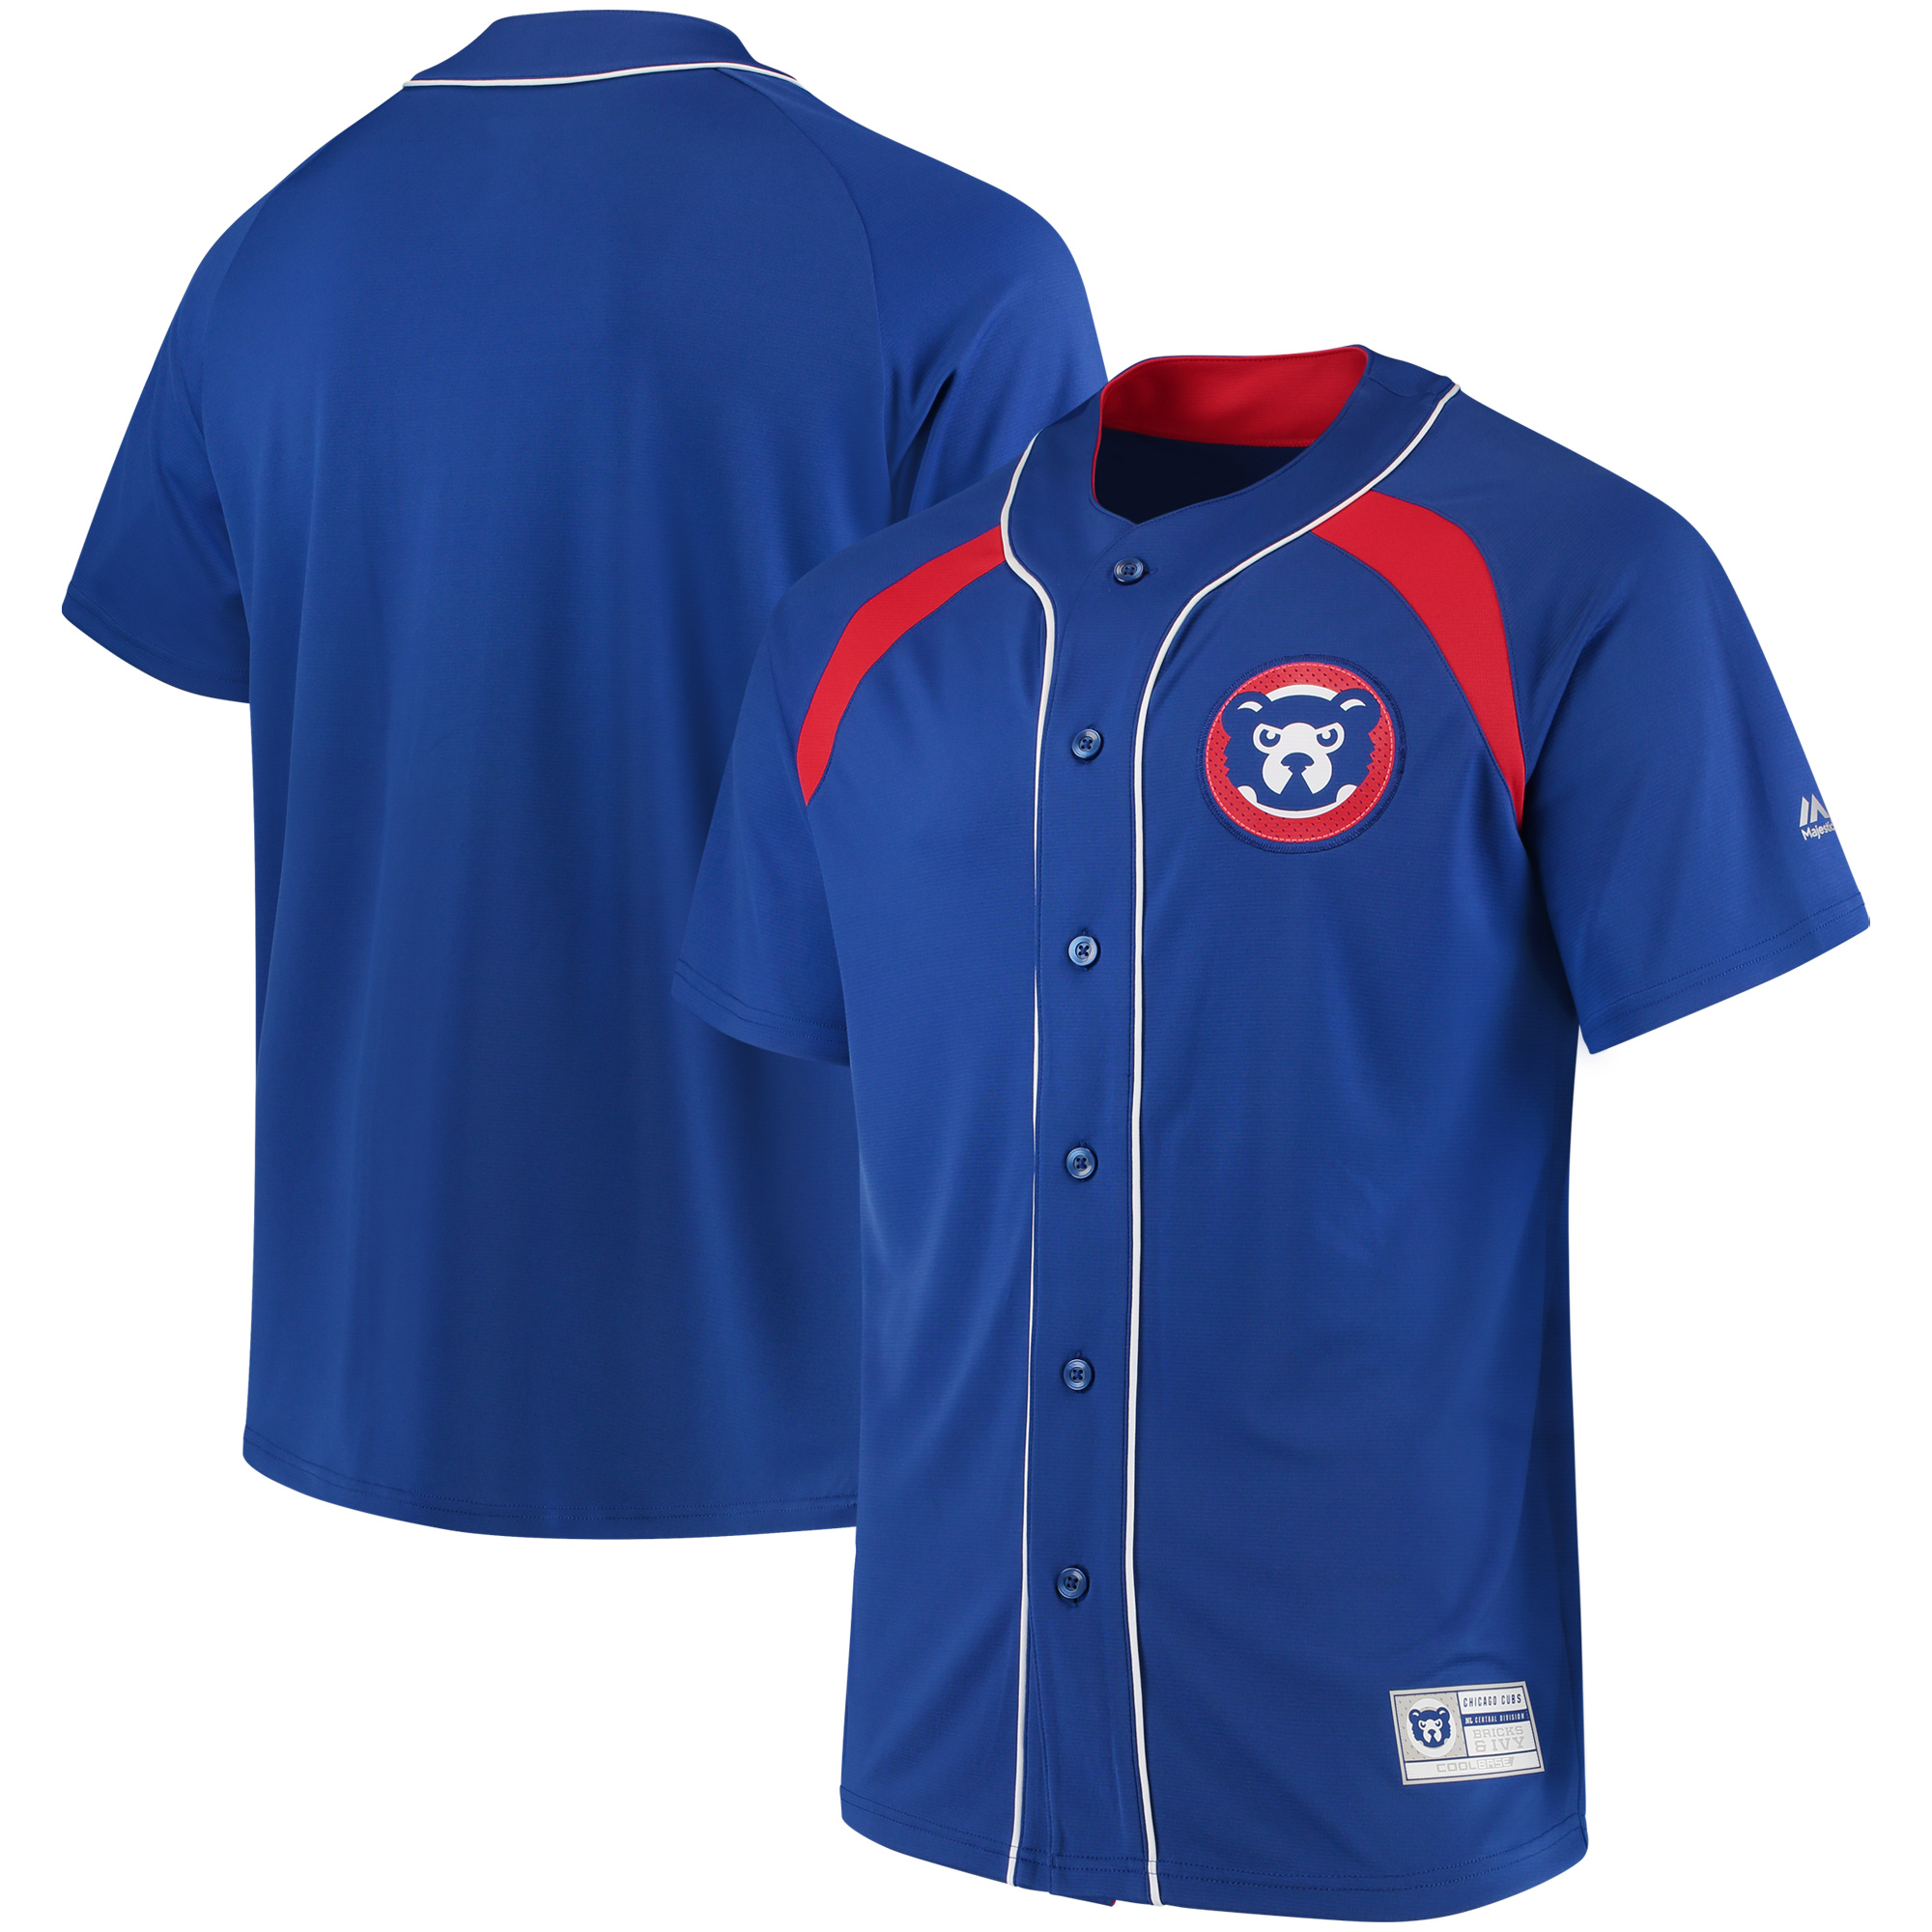 Chicago Cubs Majestic Cooperstown Collection Peak Power Fashion Jersey - Royal/Red